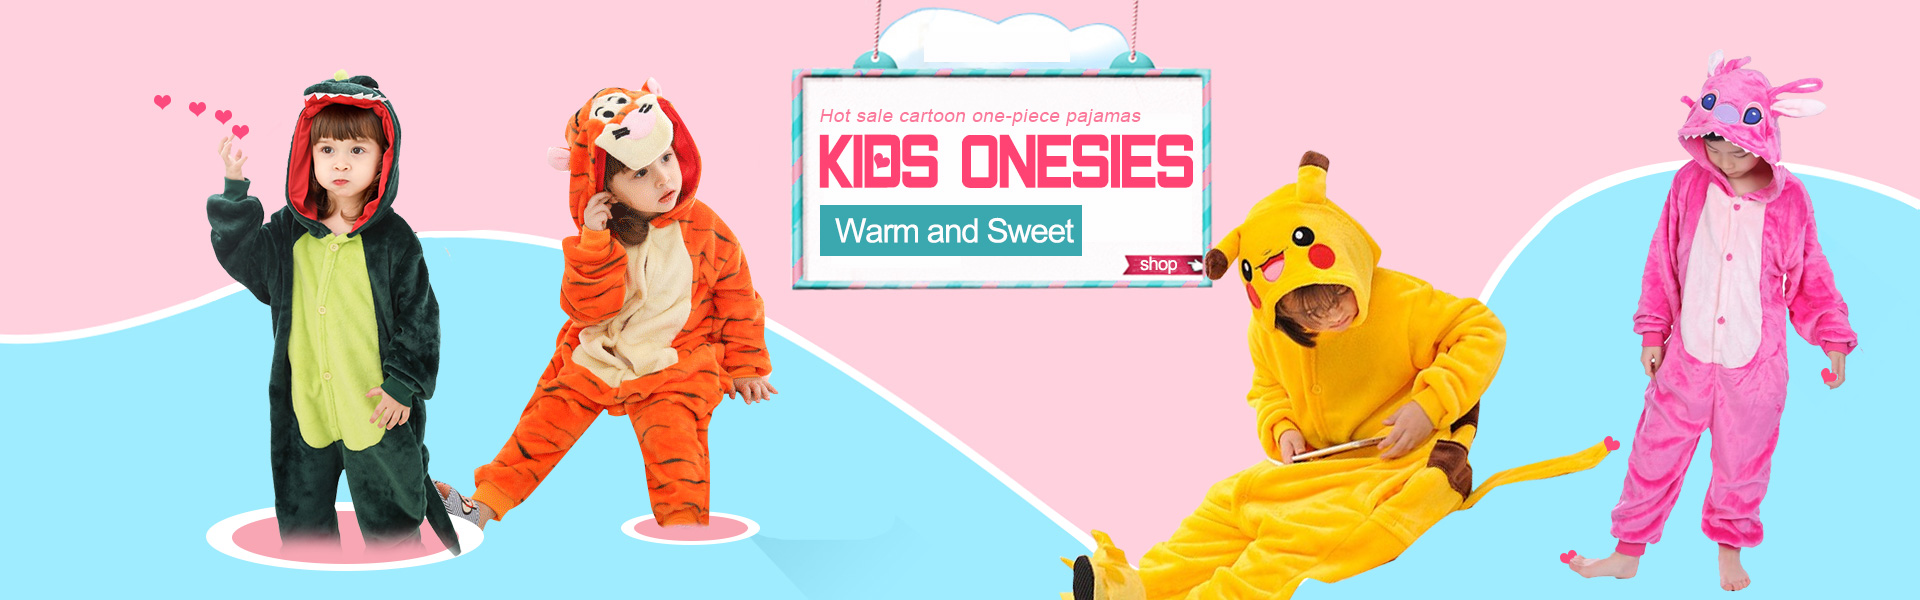 Safe and Comfortable kids kigurumi onesie pajamas with fast shipping.